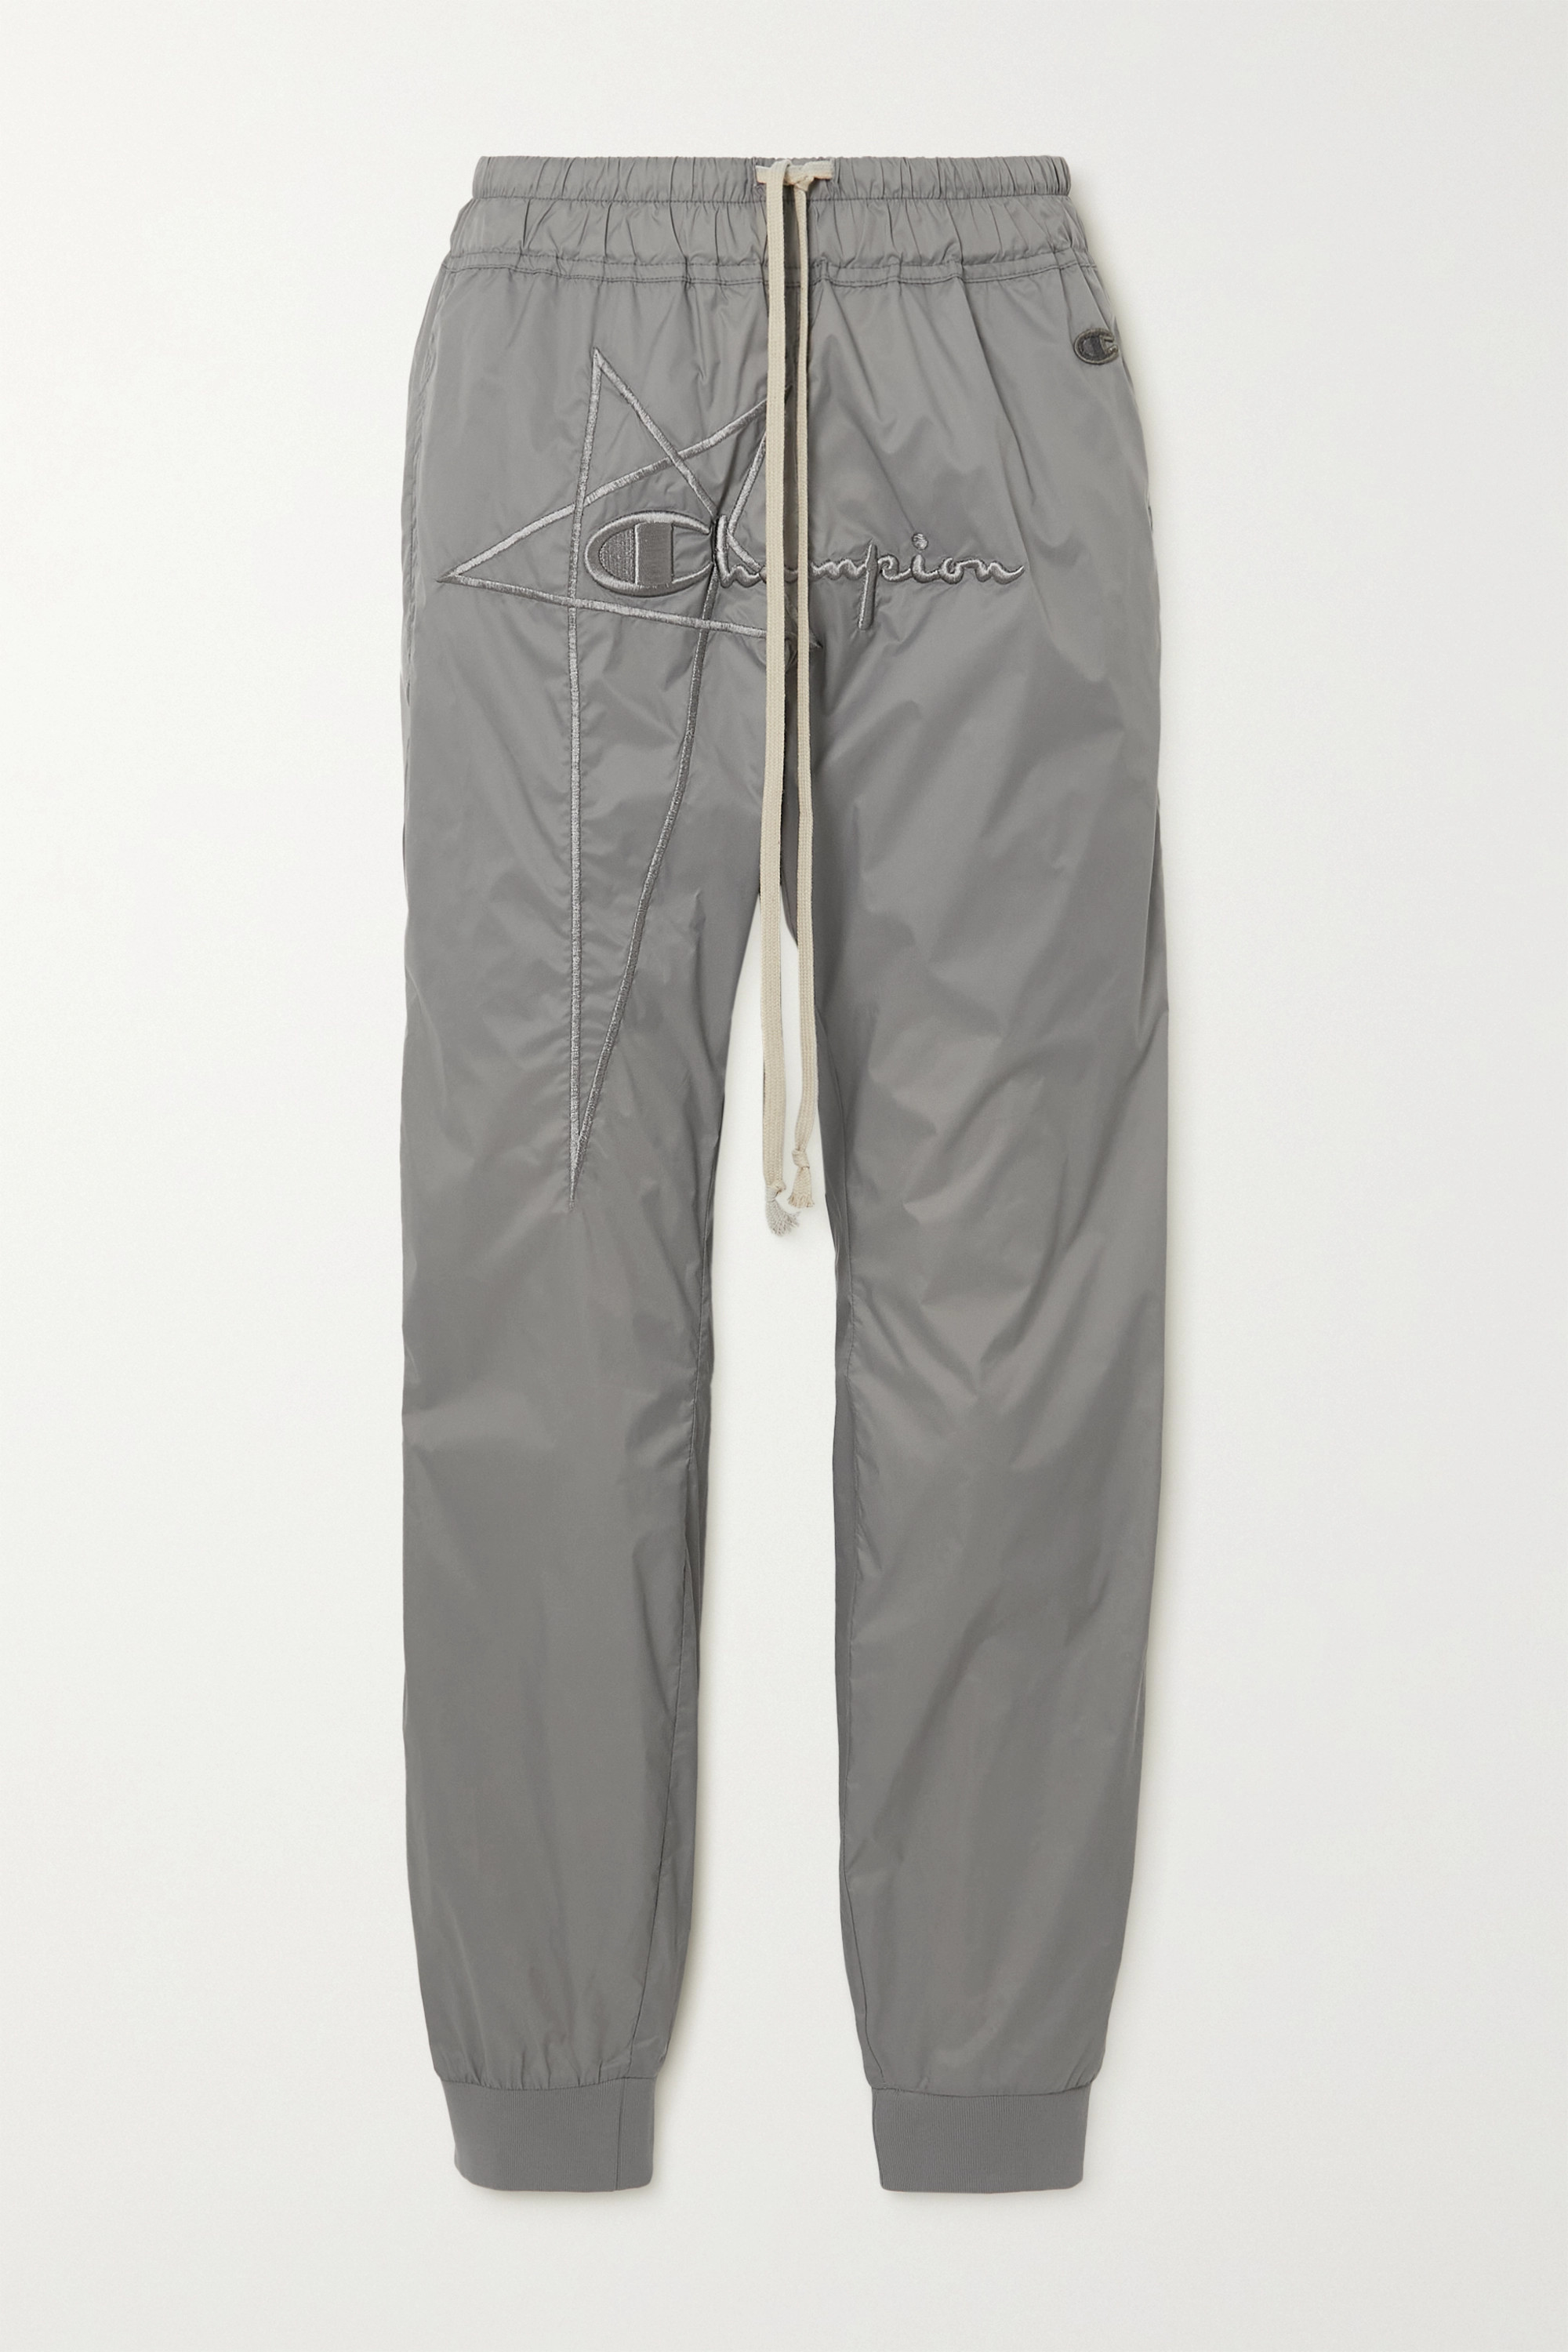 Rick Owens + Champion embroidered shell track pants